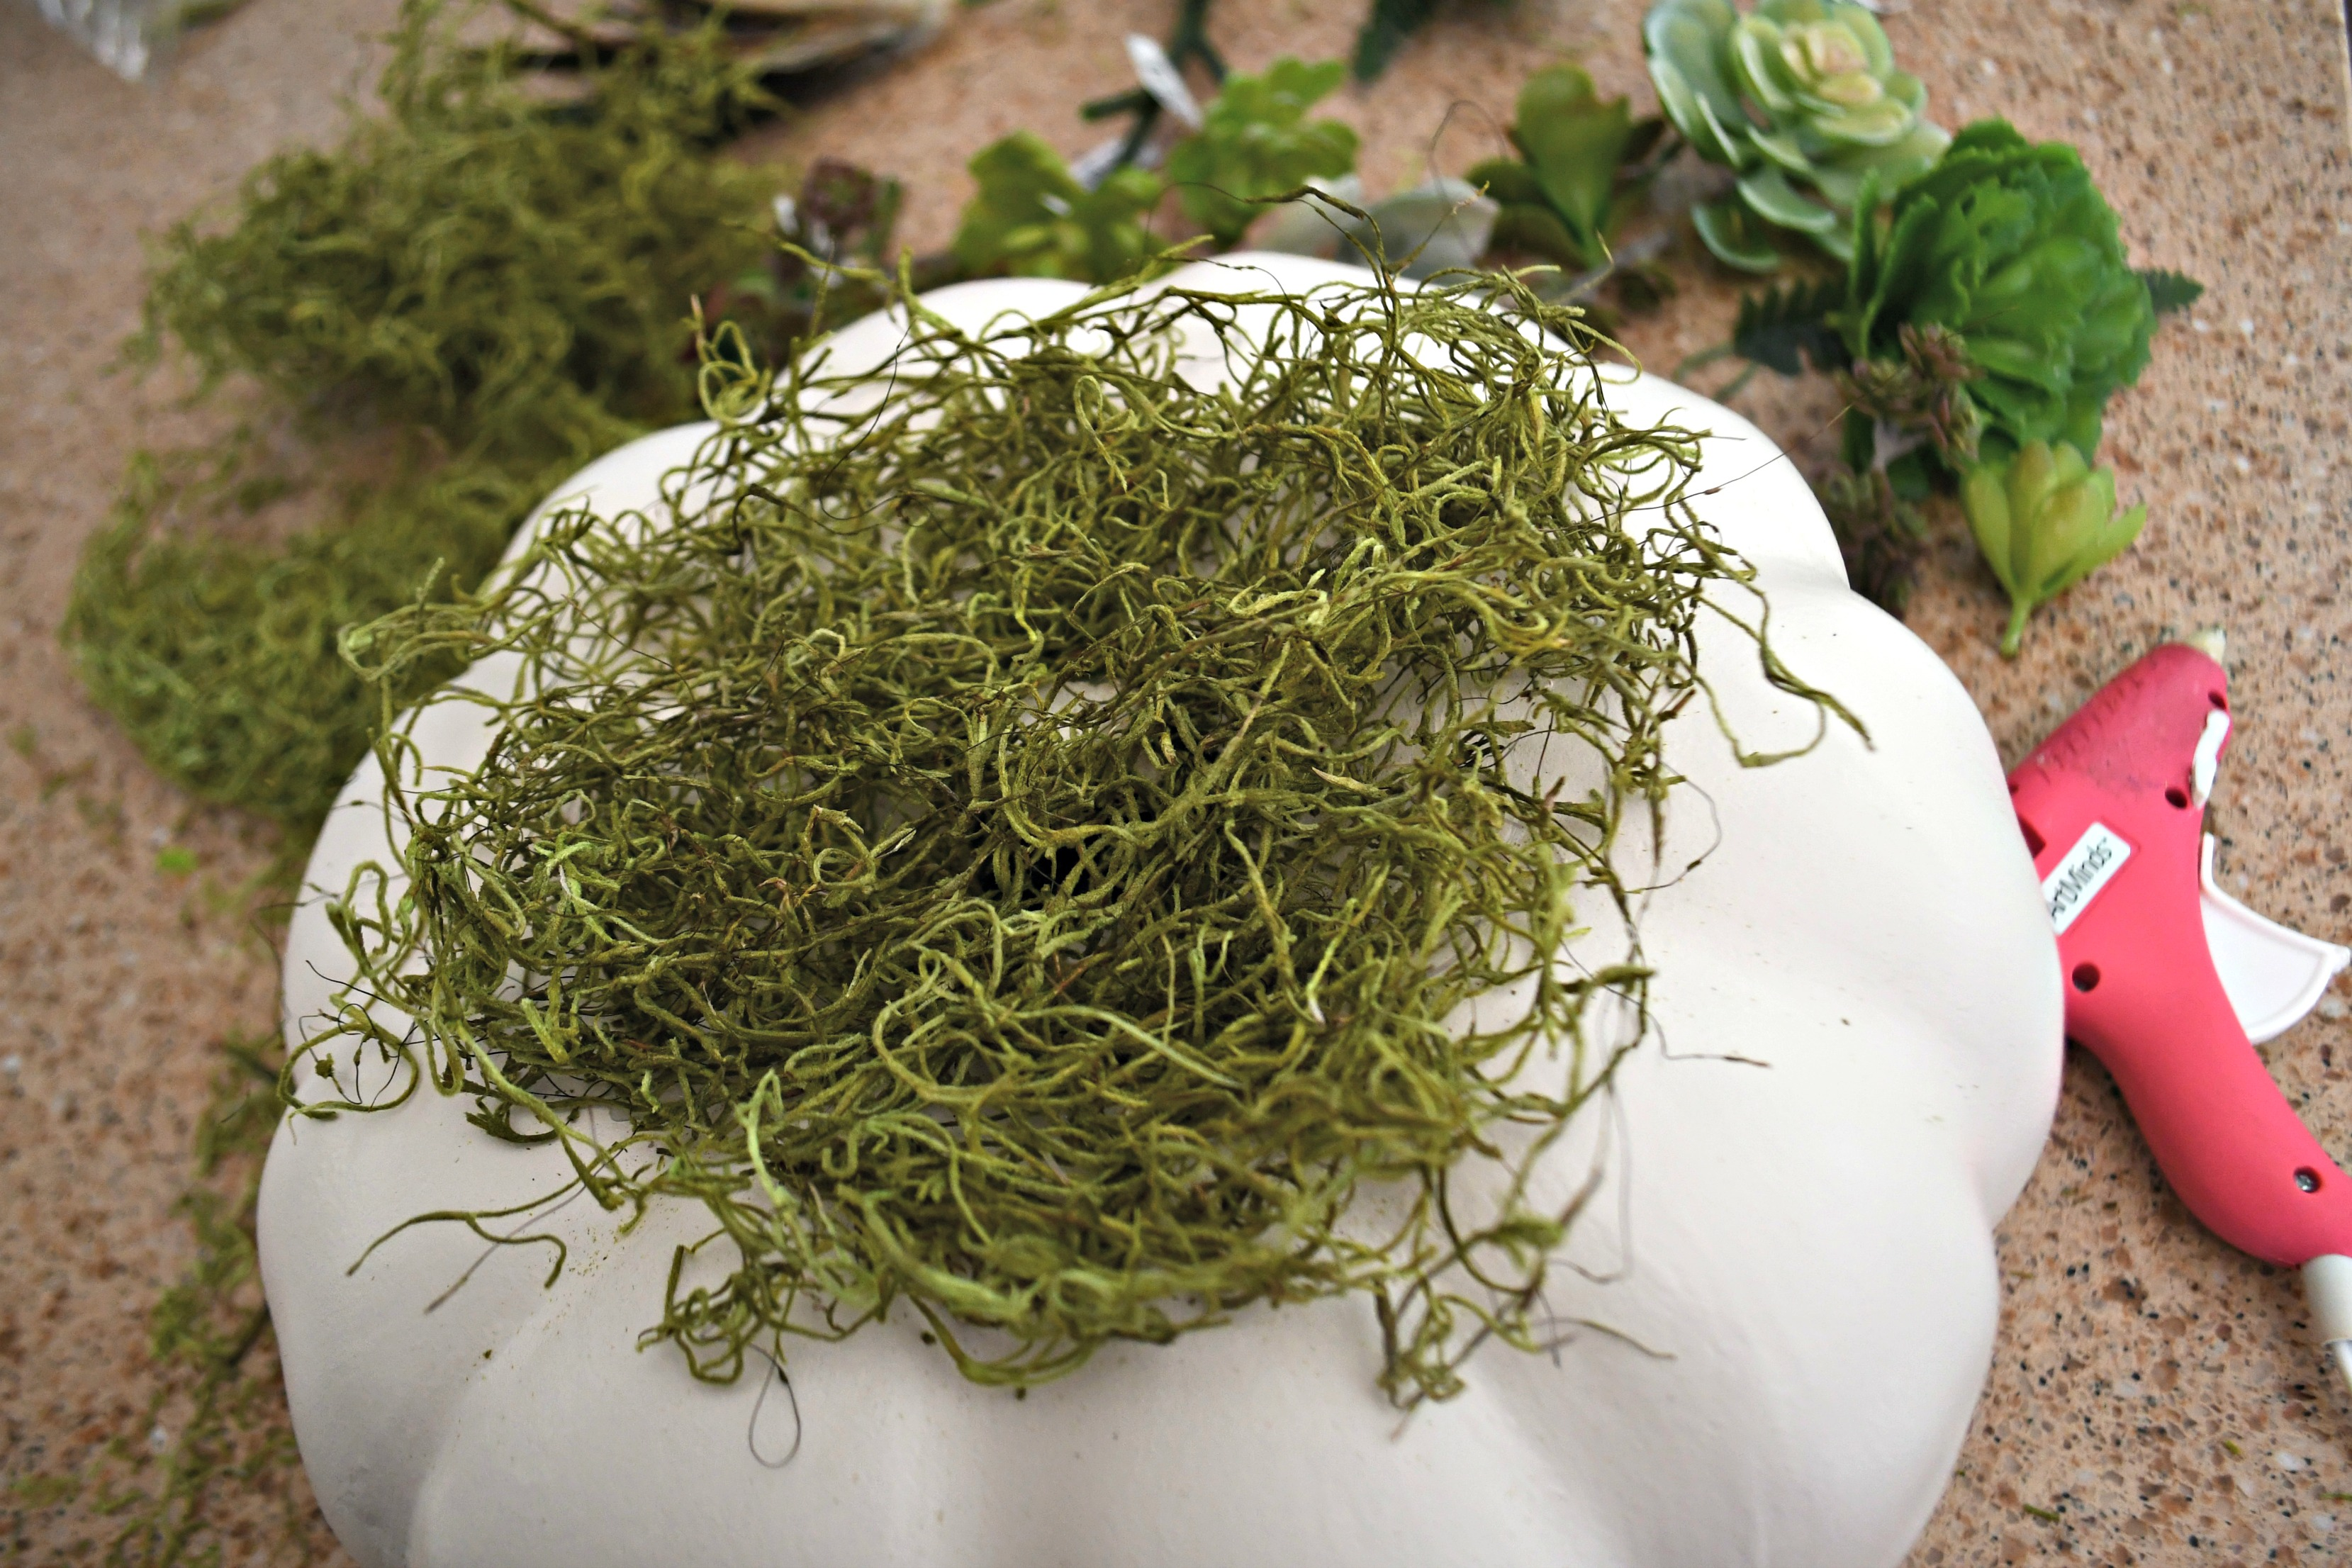 style your fall table with this DIY succulent centerpiece idea - here, adding moss